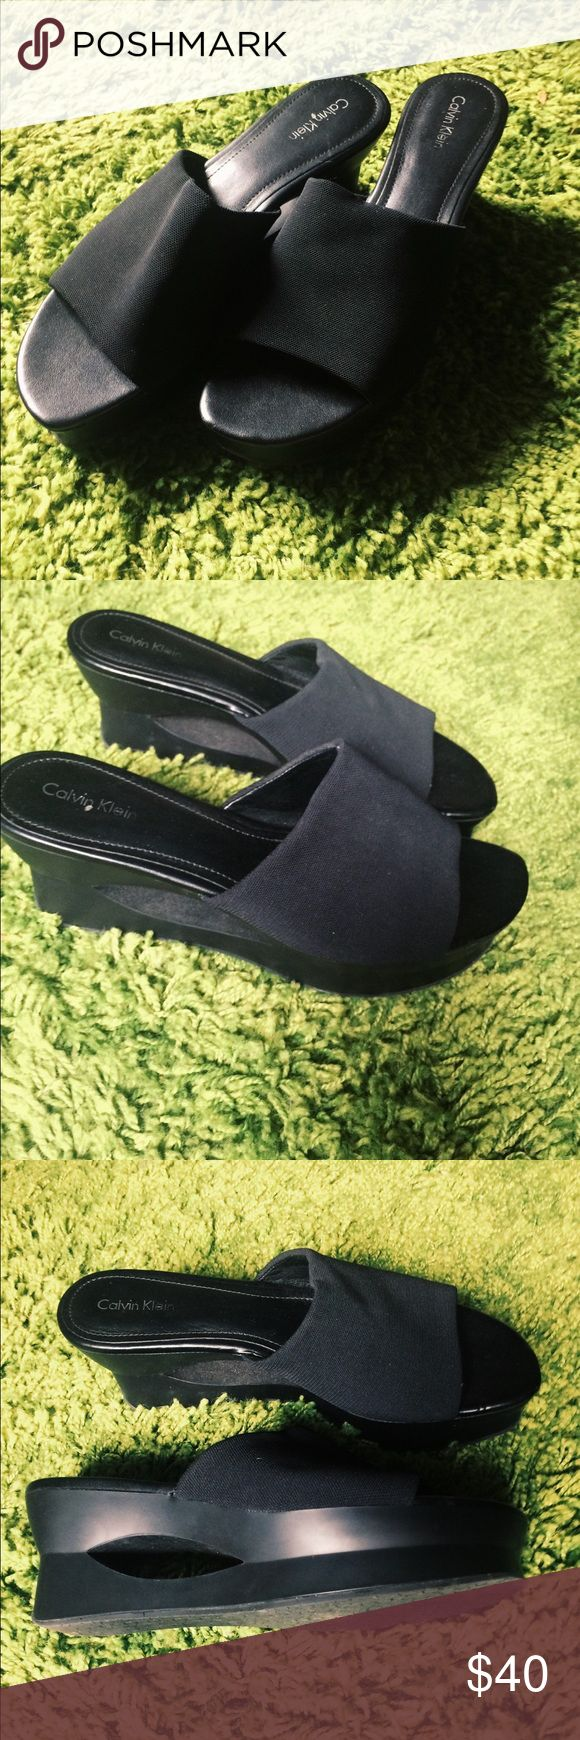 Calvin Klein 90's style slip on platforms 90's style Calvin Klein slip ons - black. Super sleek and comfortable looks great with any outfit! Size 9m Calvin Klein Shoes Platforms